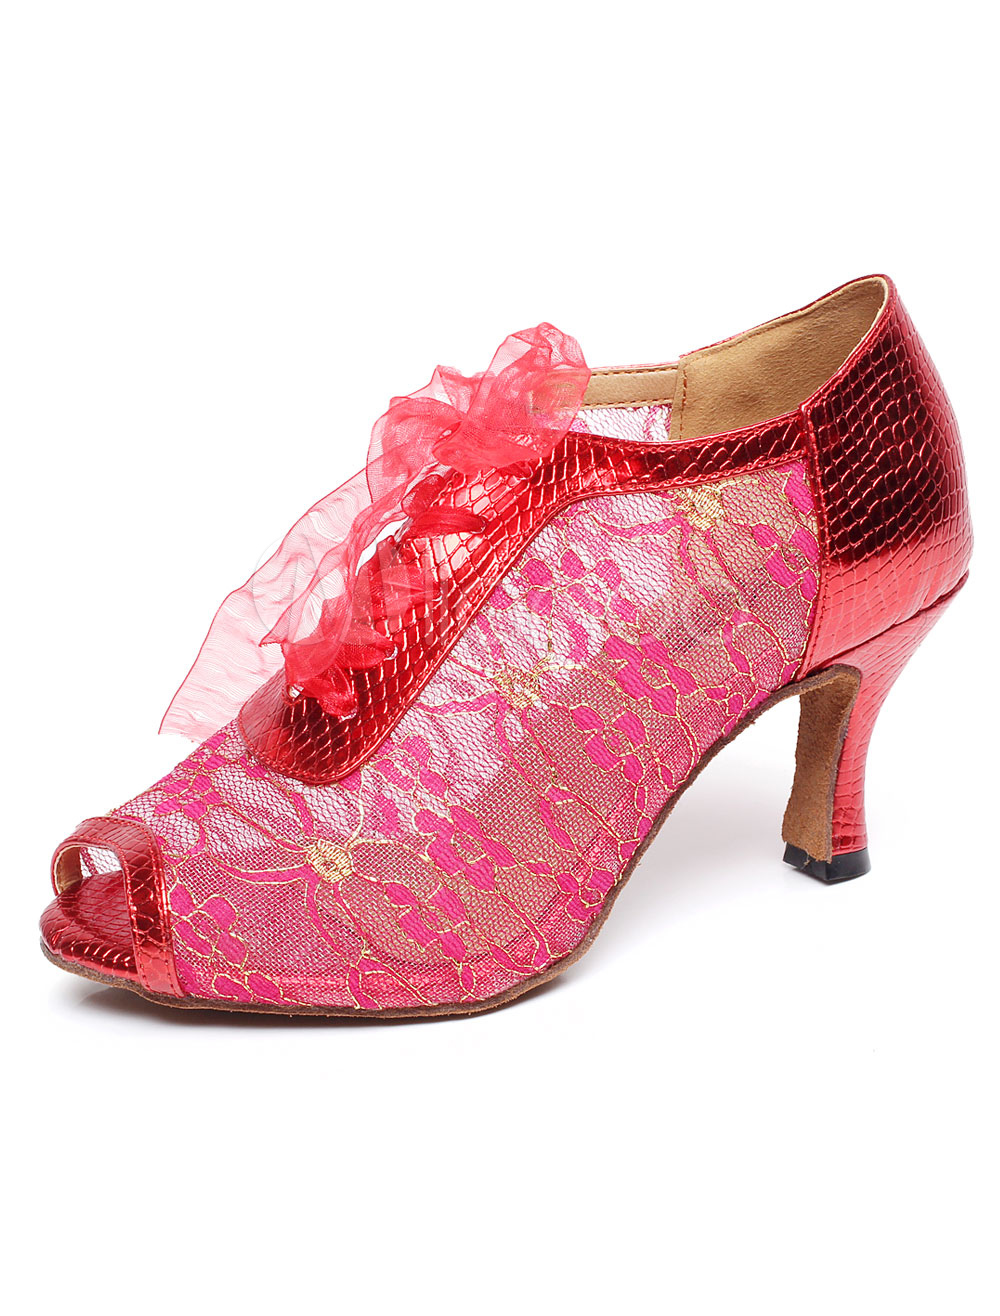 Buy Peep Toe Latin Dance Heels Multicolor Mesh Lace Up Shoes for Women for $24.49 in Milanoo store